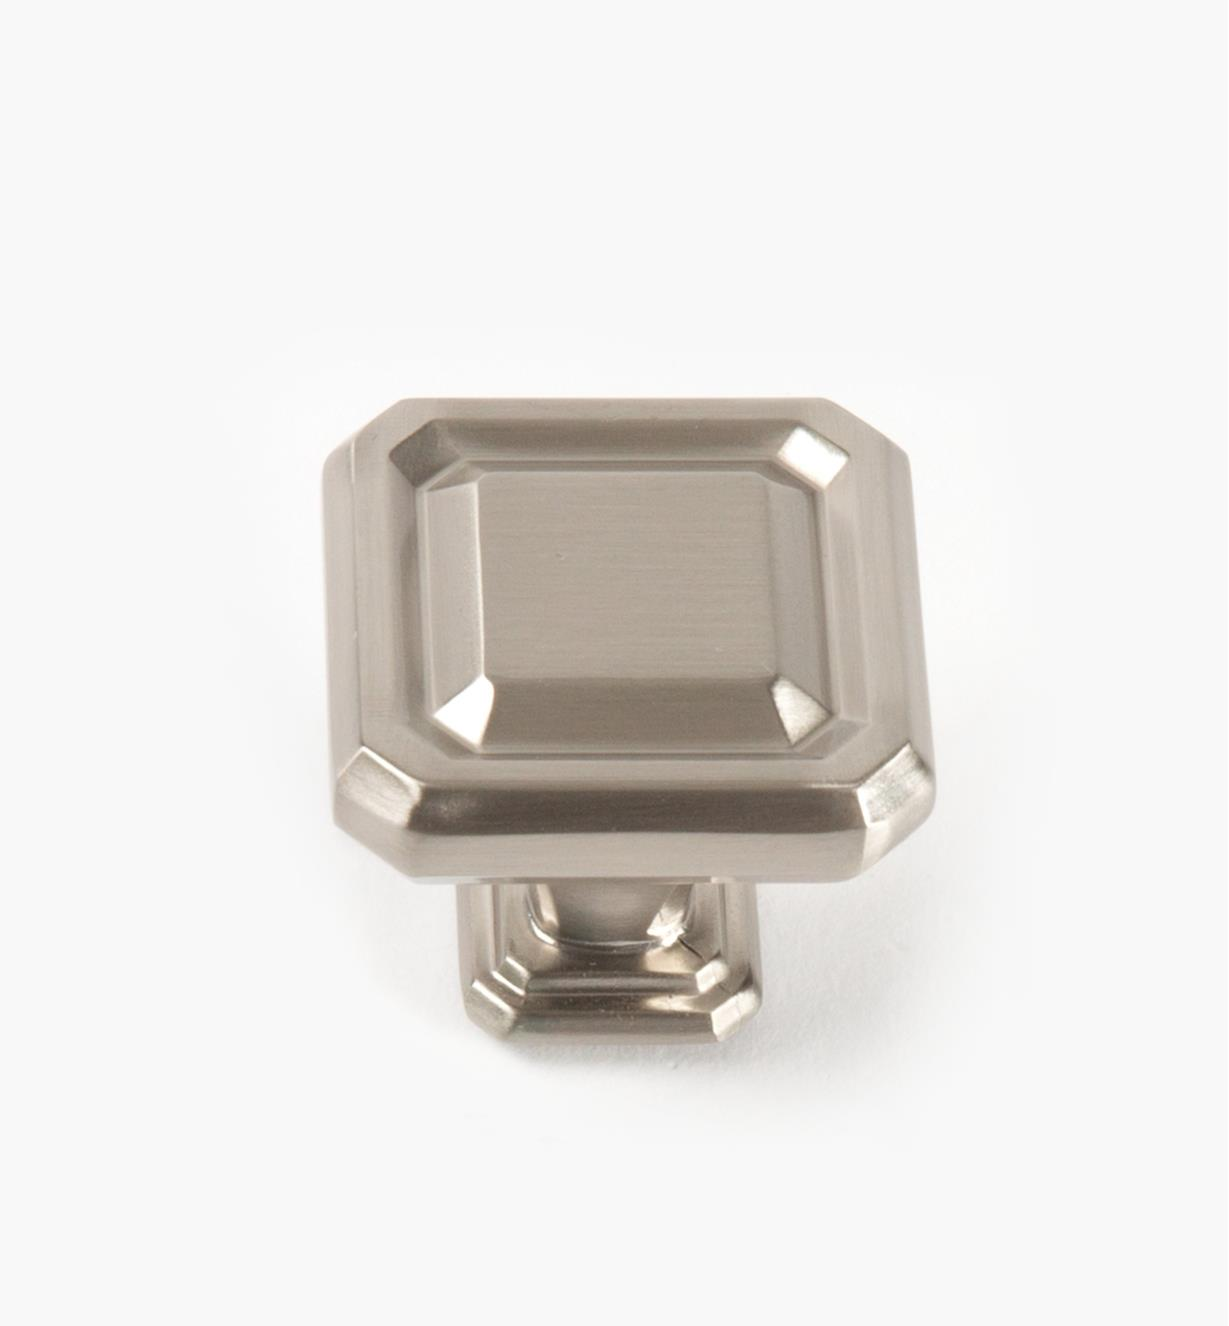 02A1626 - Wells Satin Nickel 38mm x 35mm Knob, each